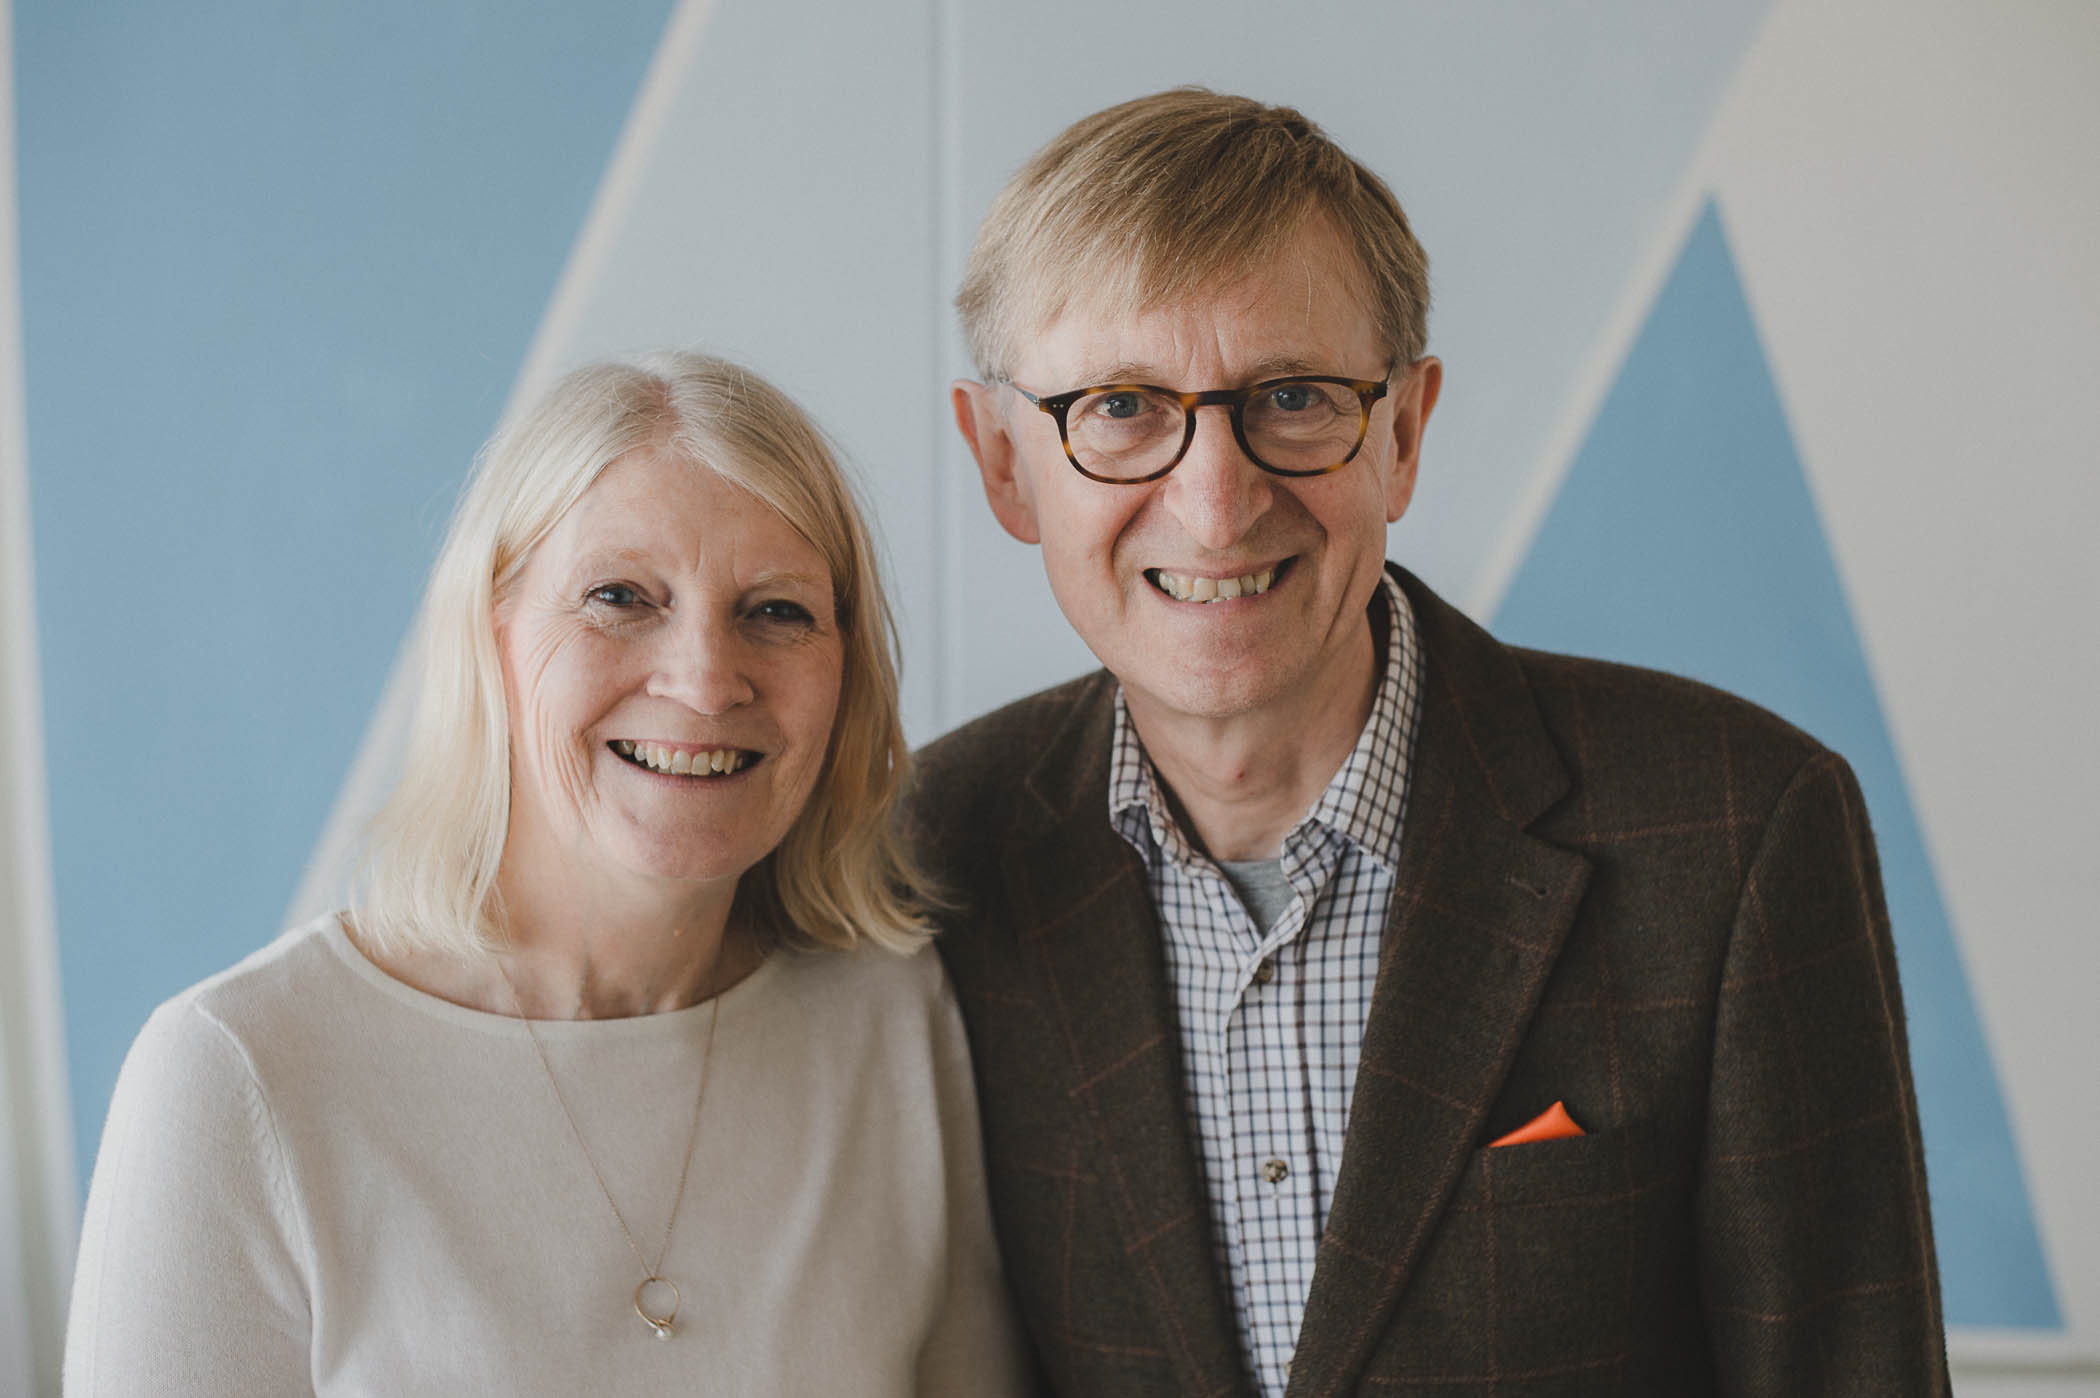 Iain and Lesley Stewart